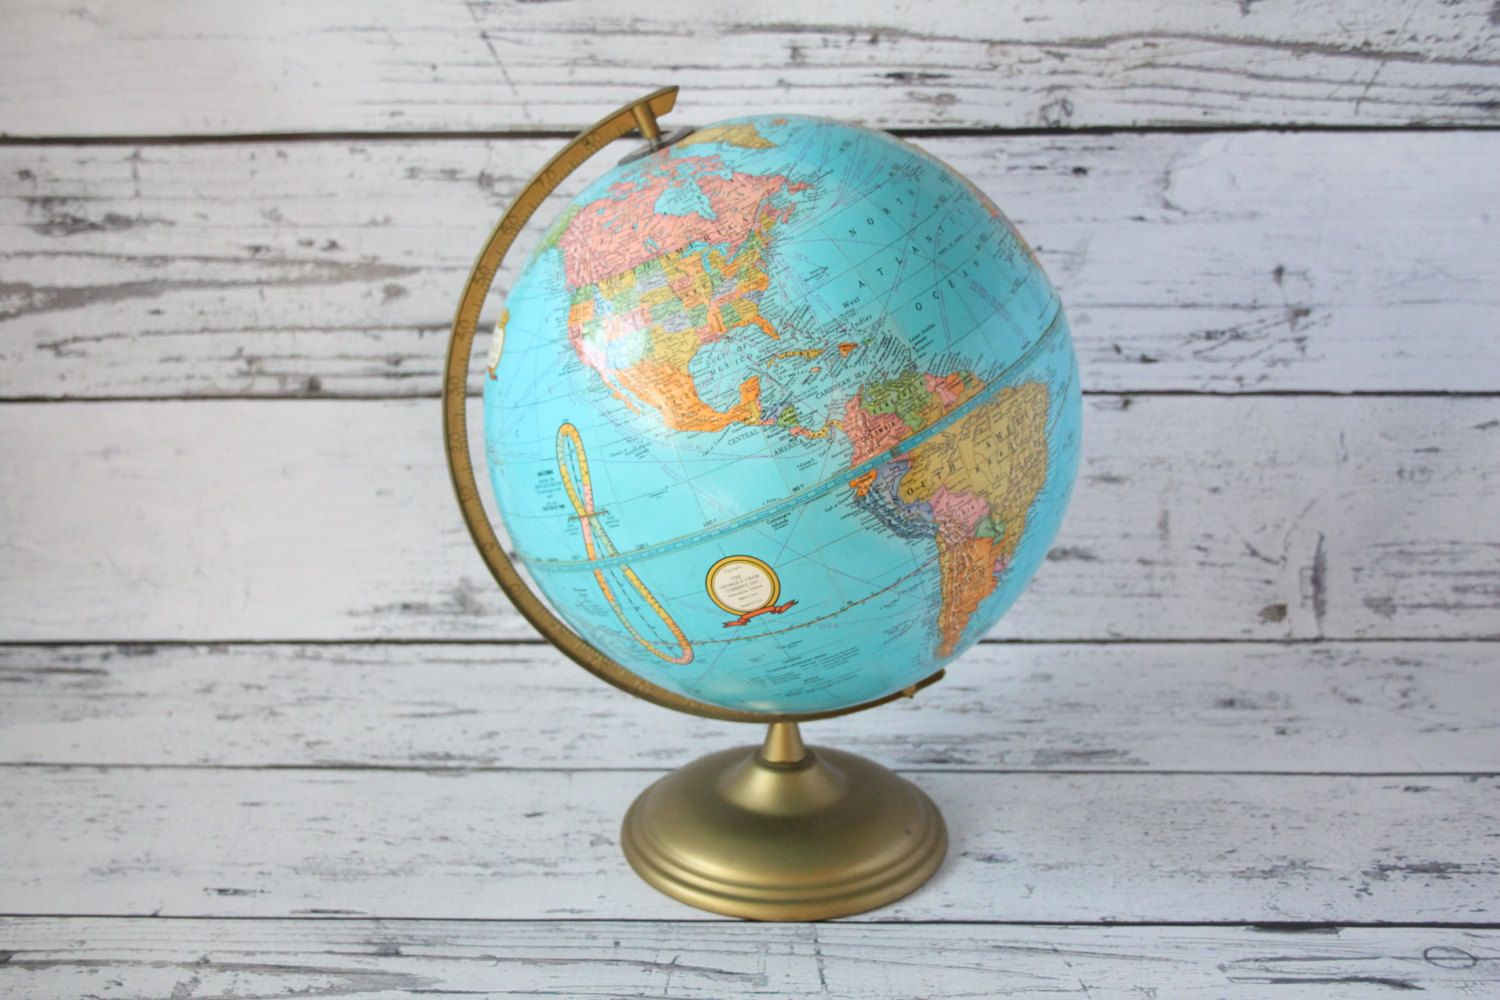 Vintage crams imperial world globe blue color brass color metal vintage crams imperial world globe blue color brass color metal base george cram 12 earth tabletop rotating russia map by gumiabroncs Choice Image